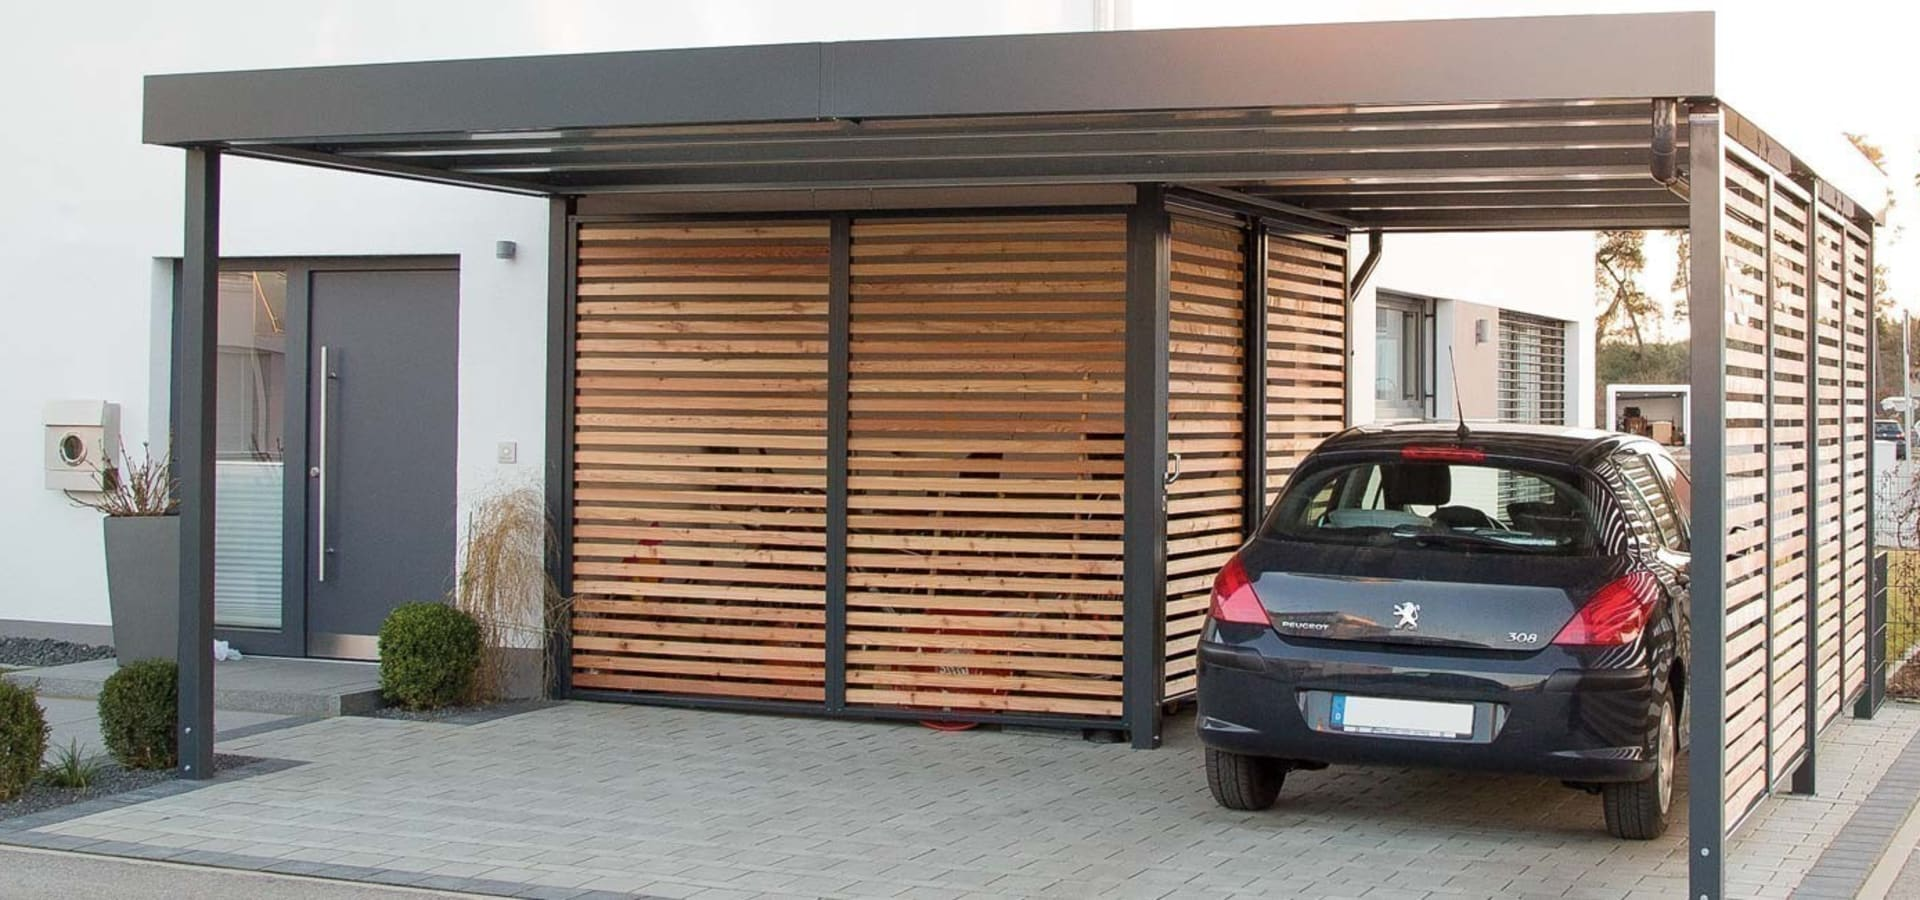 carports aus stahl von siebau de siebau raumsysteme gmbh co kg homify. Black Bedroom Furniture Sets. Home Design Ideas